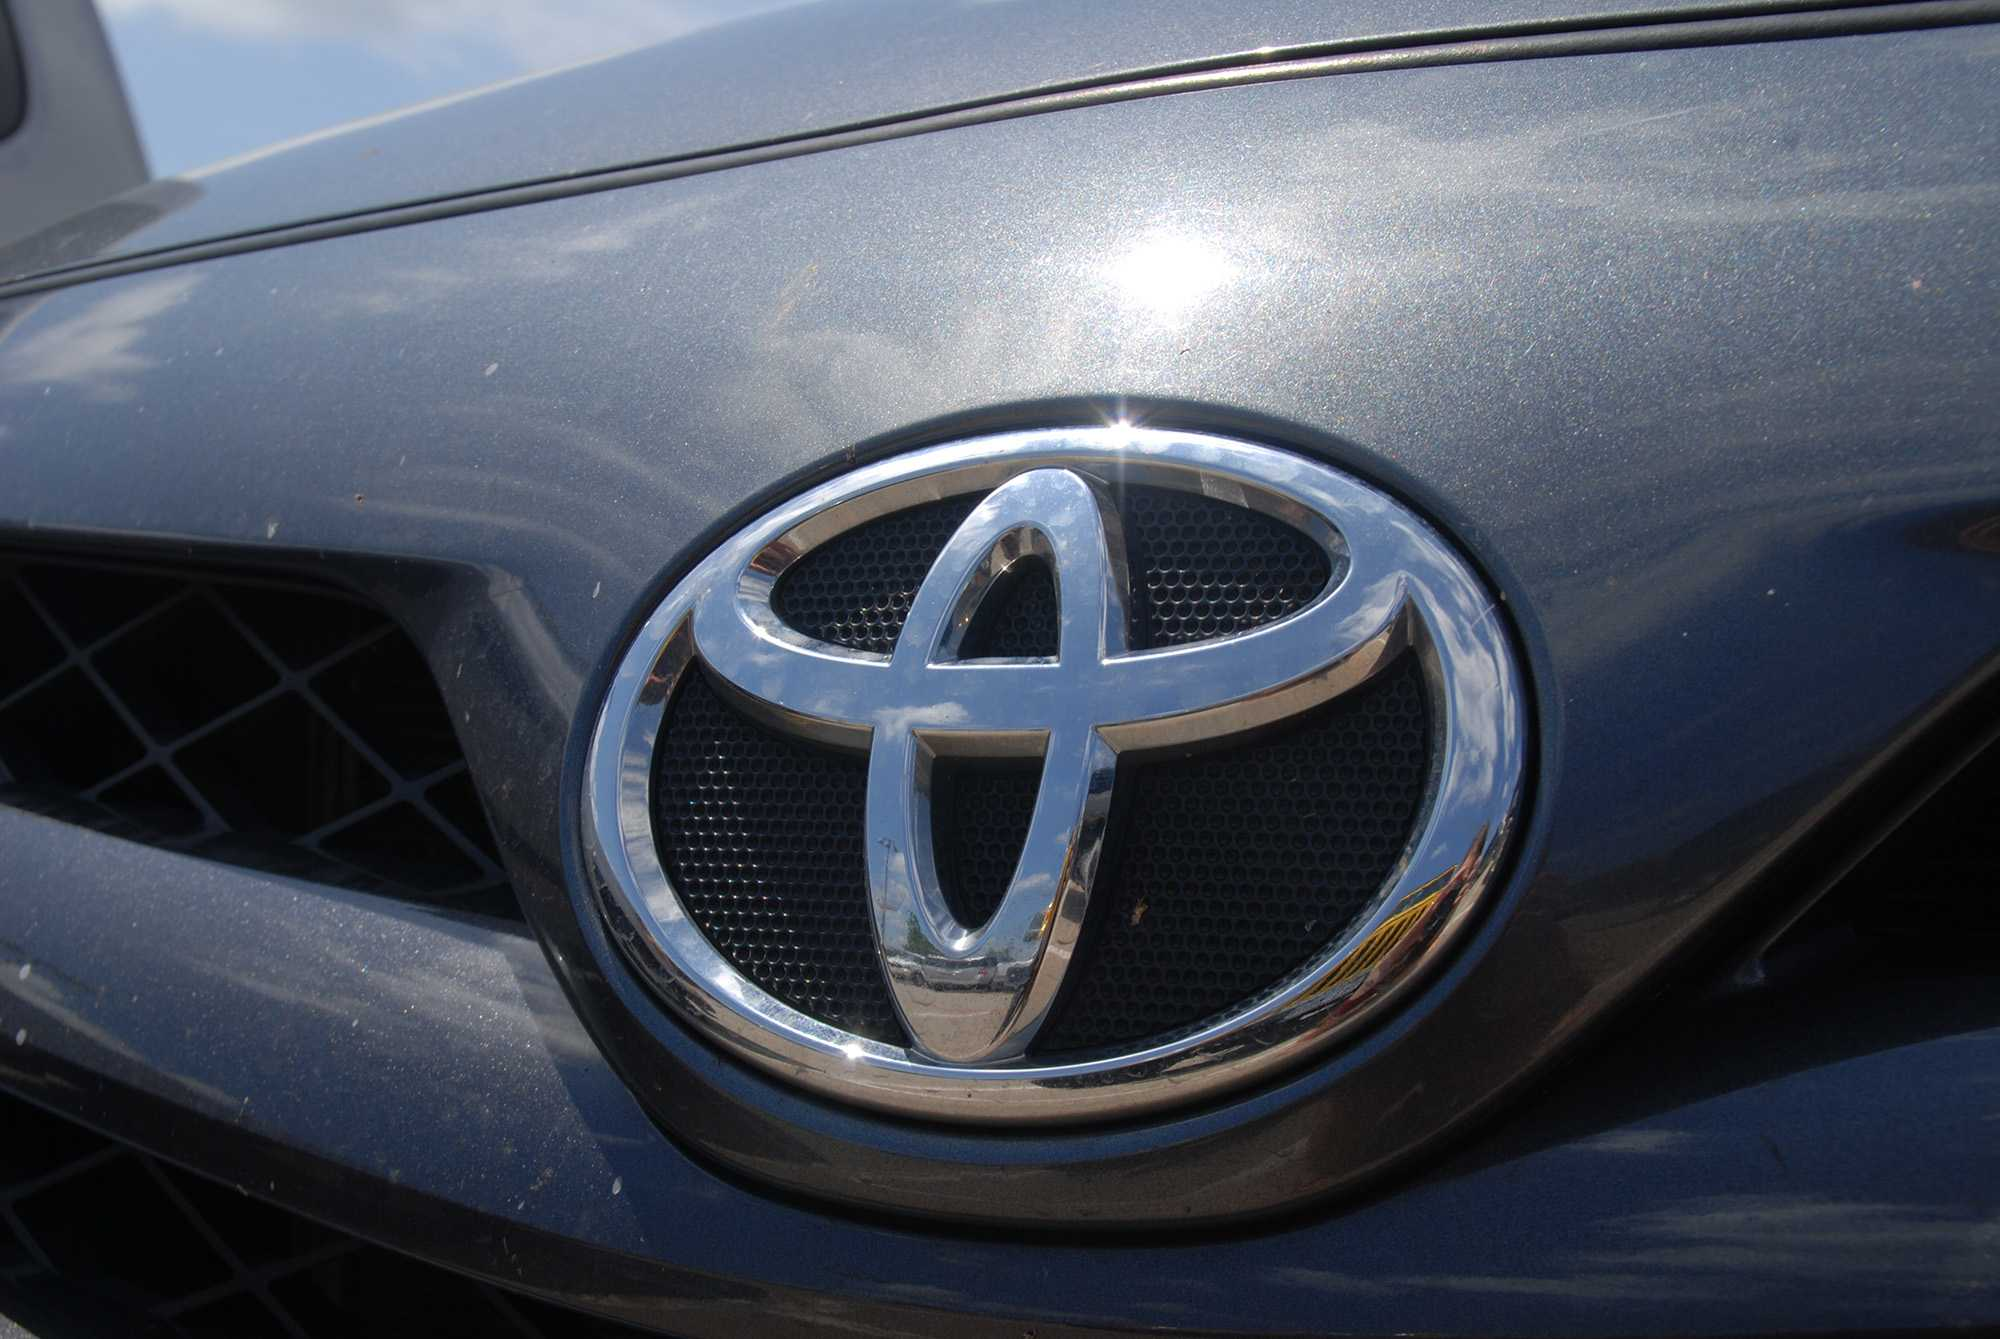 The auto giant, Toyota, is moving headquarters to Plano, which will impact the local economy.